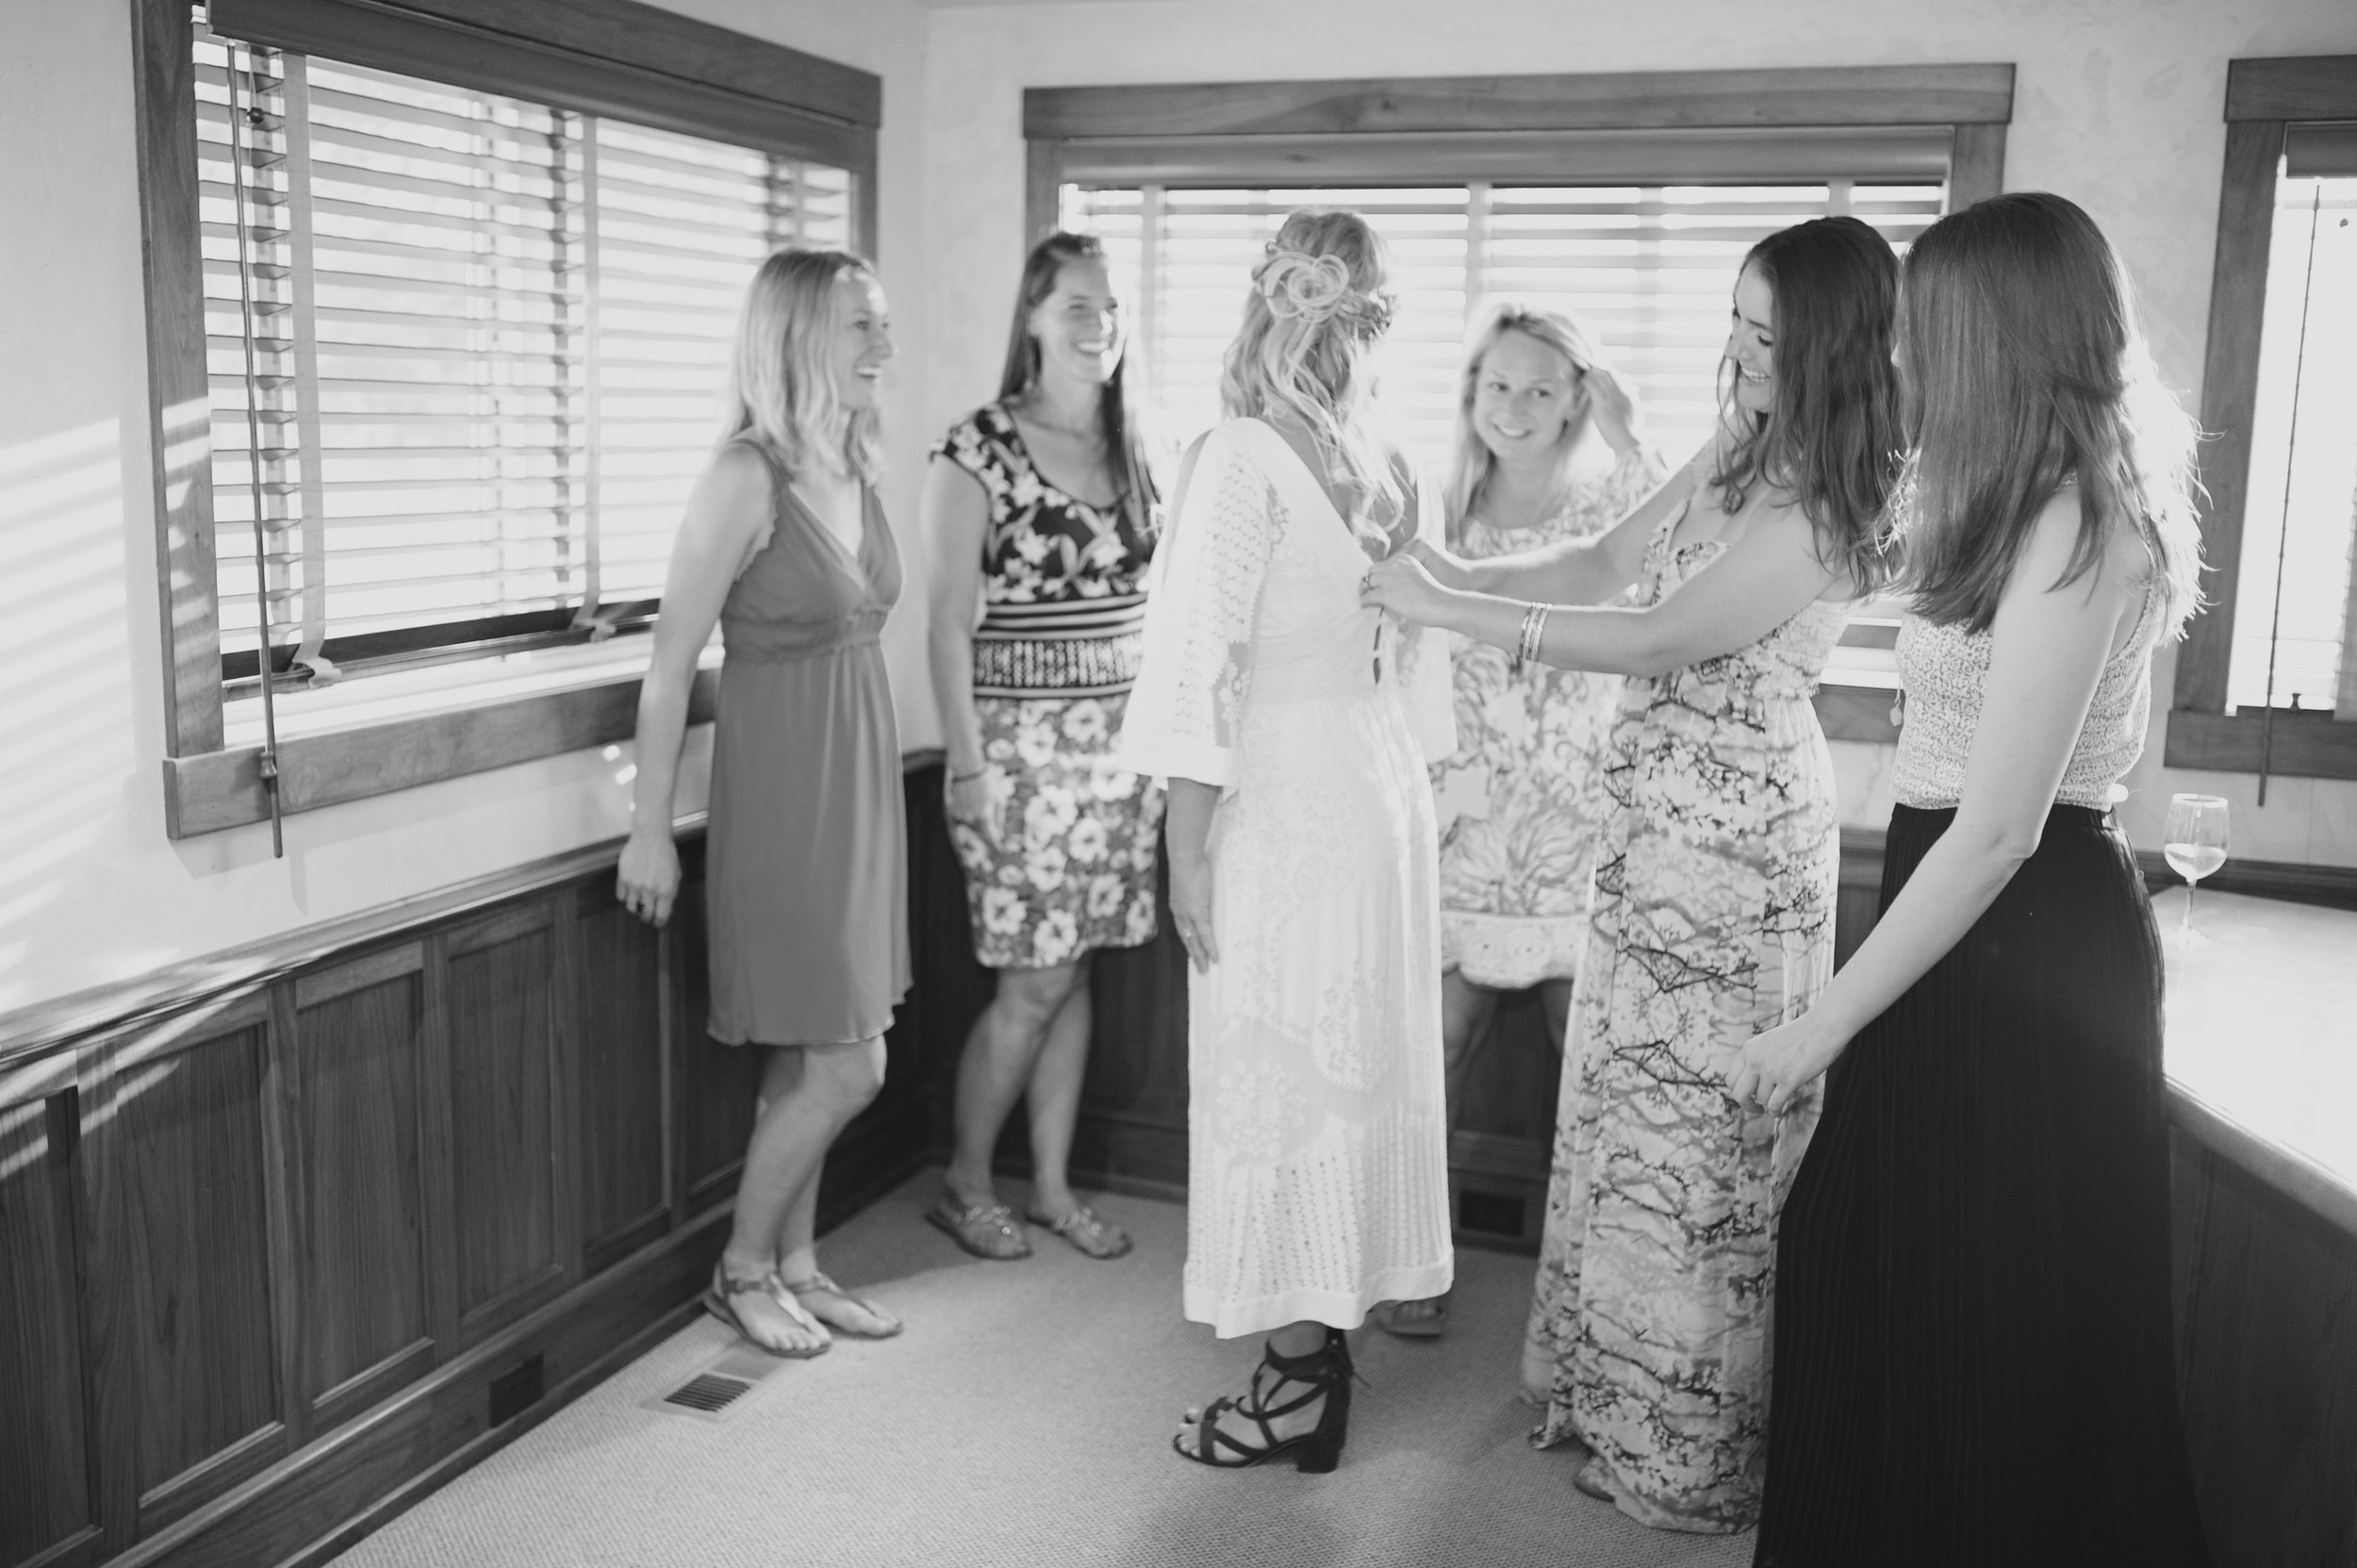 Bridal Suite -  Enjoy a private on location area to get ready, room for you and the bridal party. Inquire about availability with your booking.